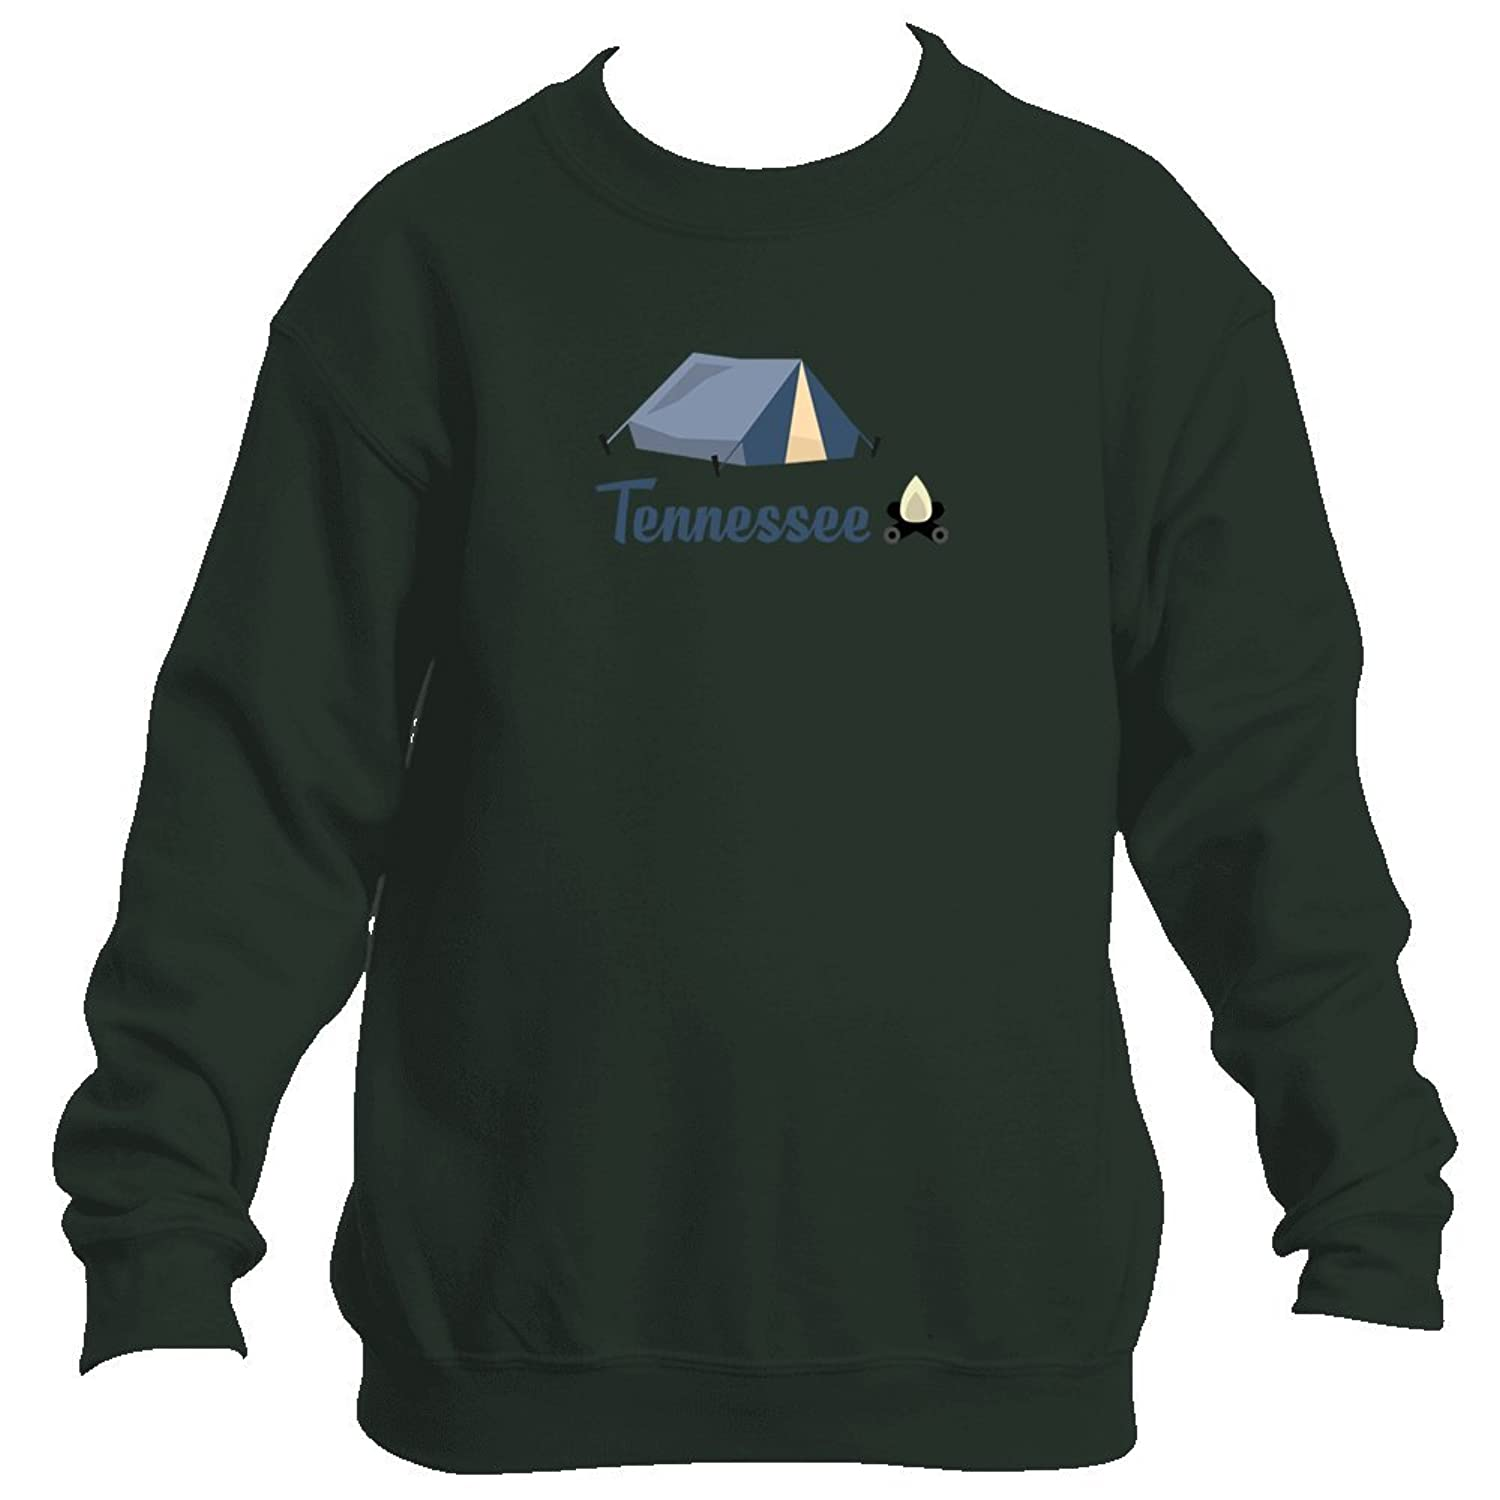 Wholesale Camping & Camp Fire - Tennessee Youth Fleece Crew Sweatshirt - Unisex free shipping